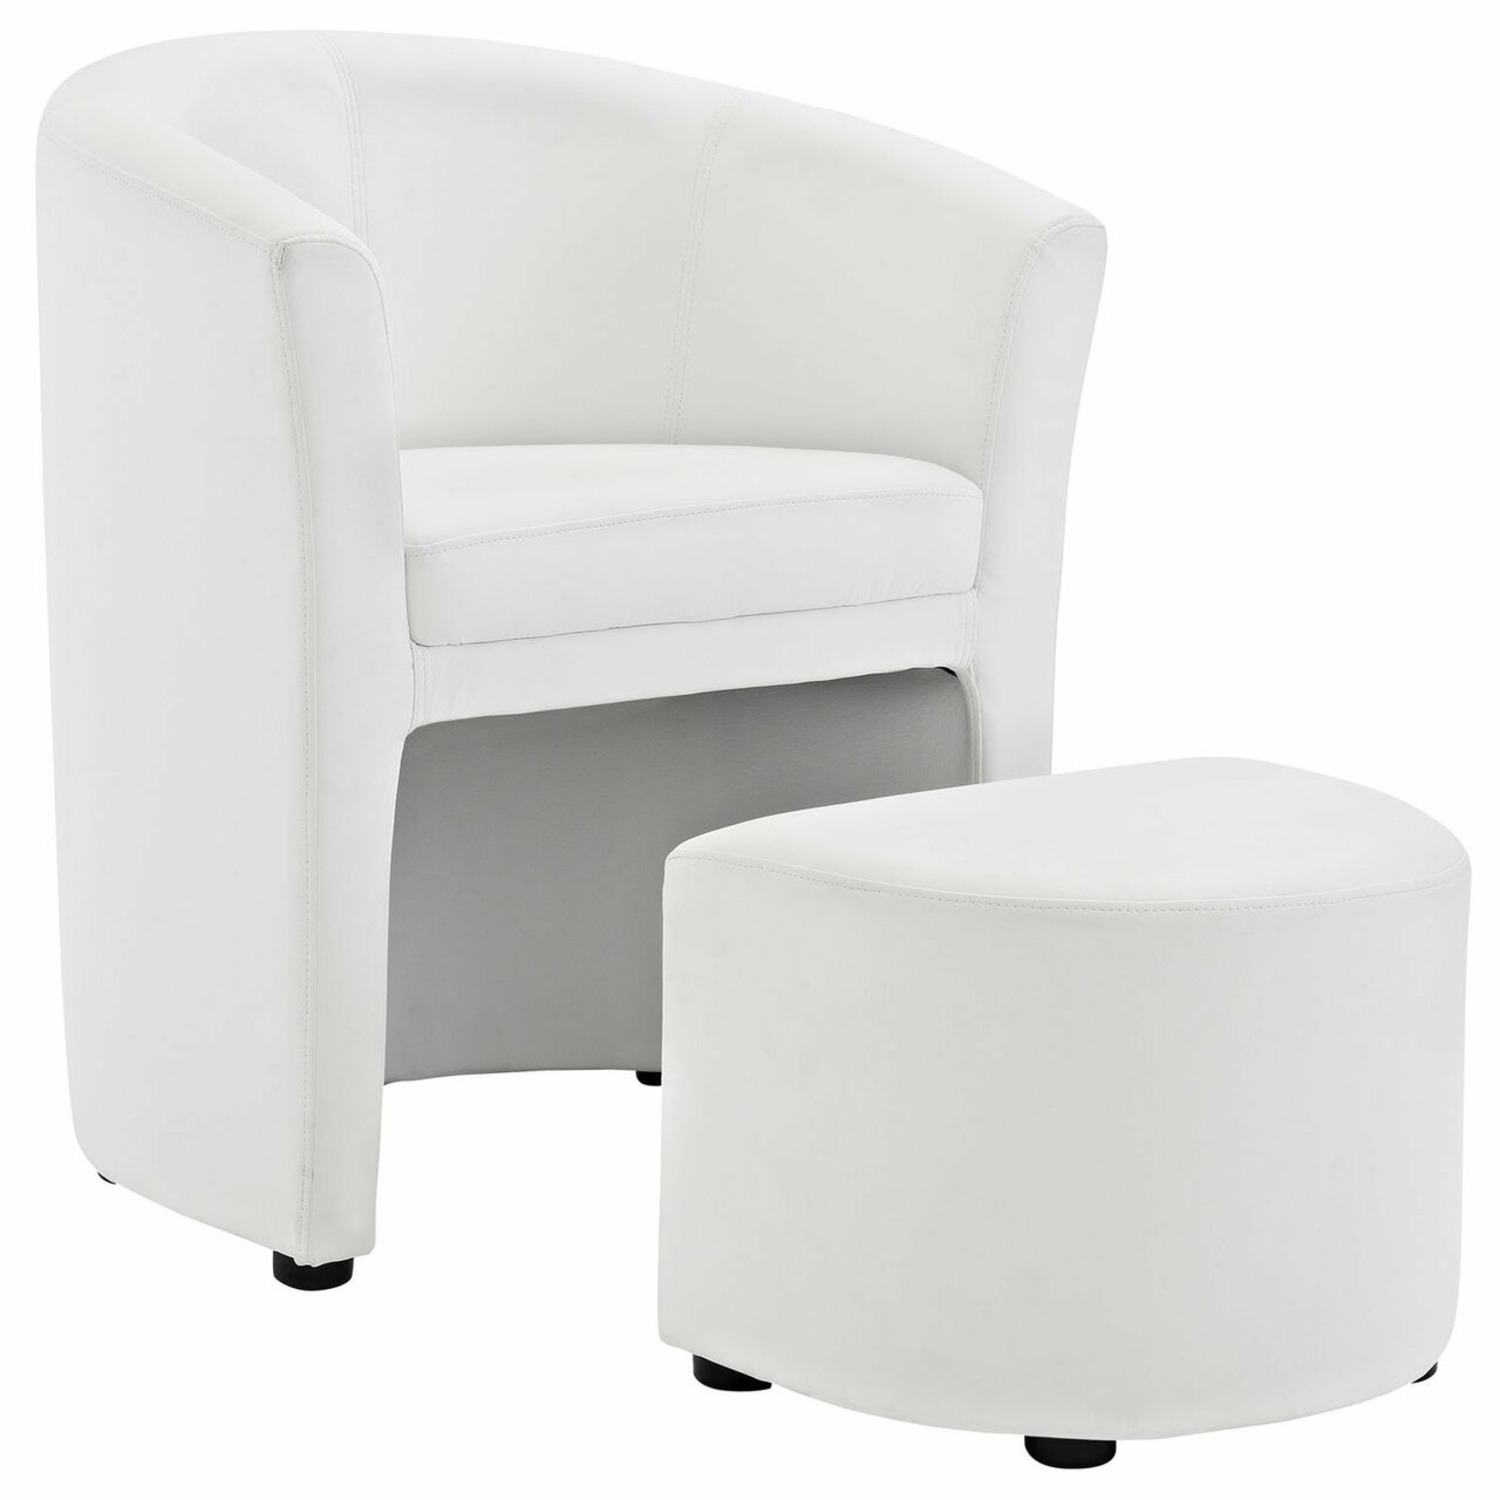 Armchair & Ottoman In White Color Upholstery - image-0